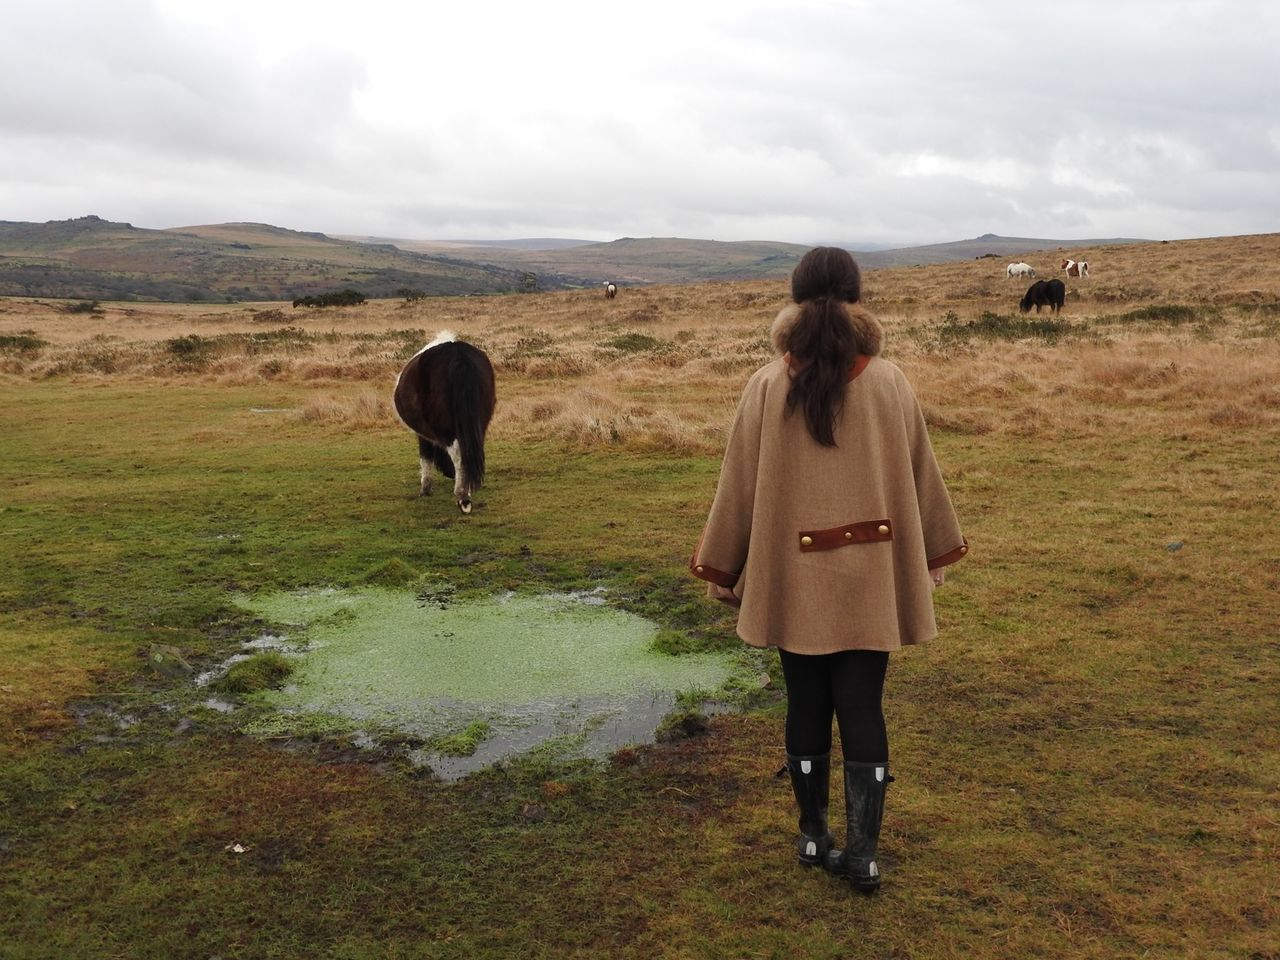 Cape  Dartmoor Dartmoor Ponies Girl Hills Hollandcooper Pond Pony View Wellies